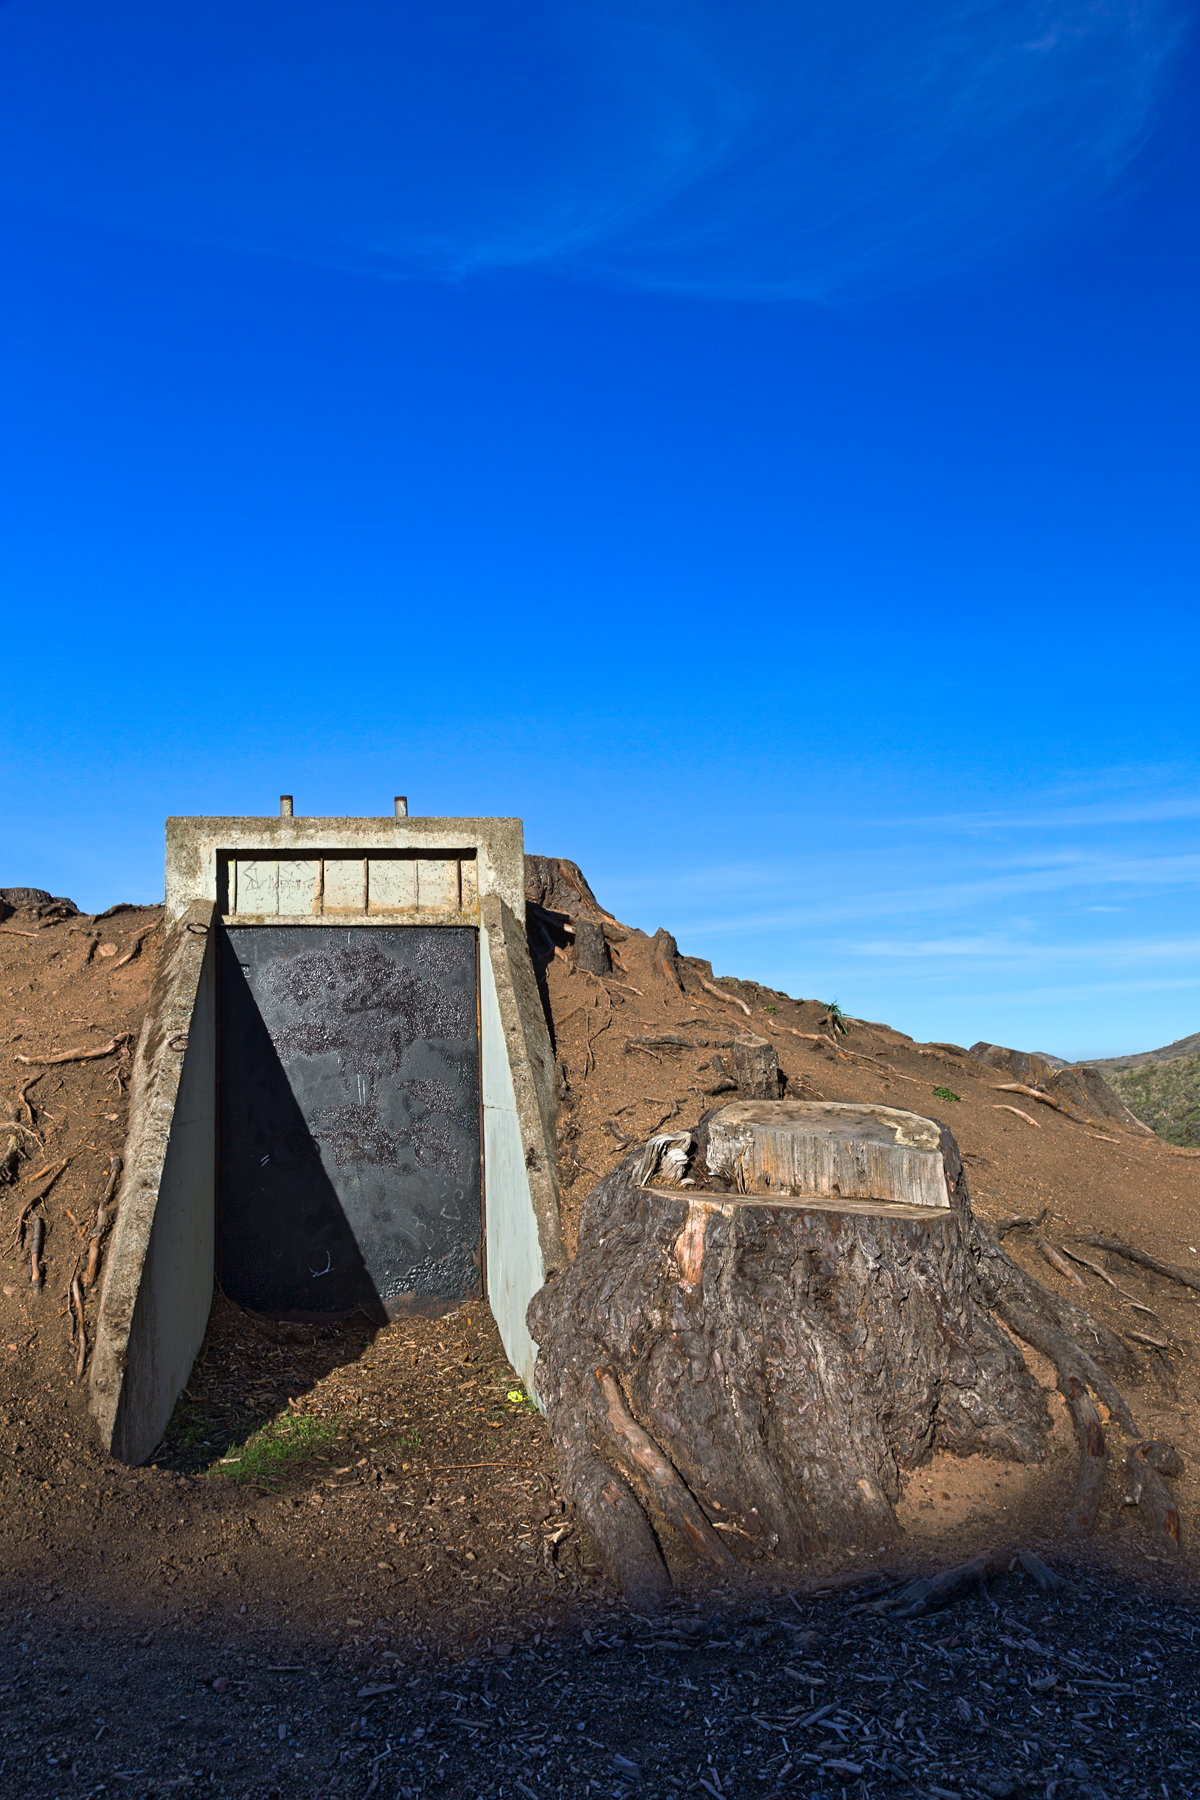 California war bunker - hdr photo